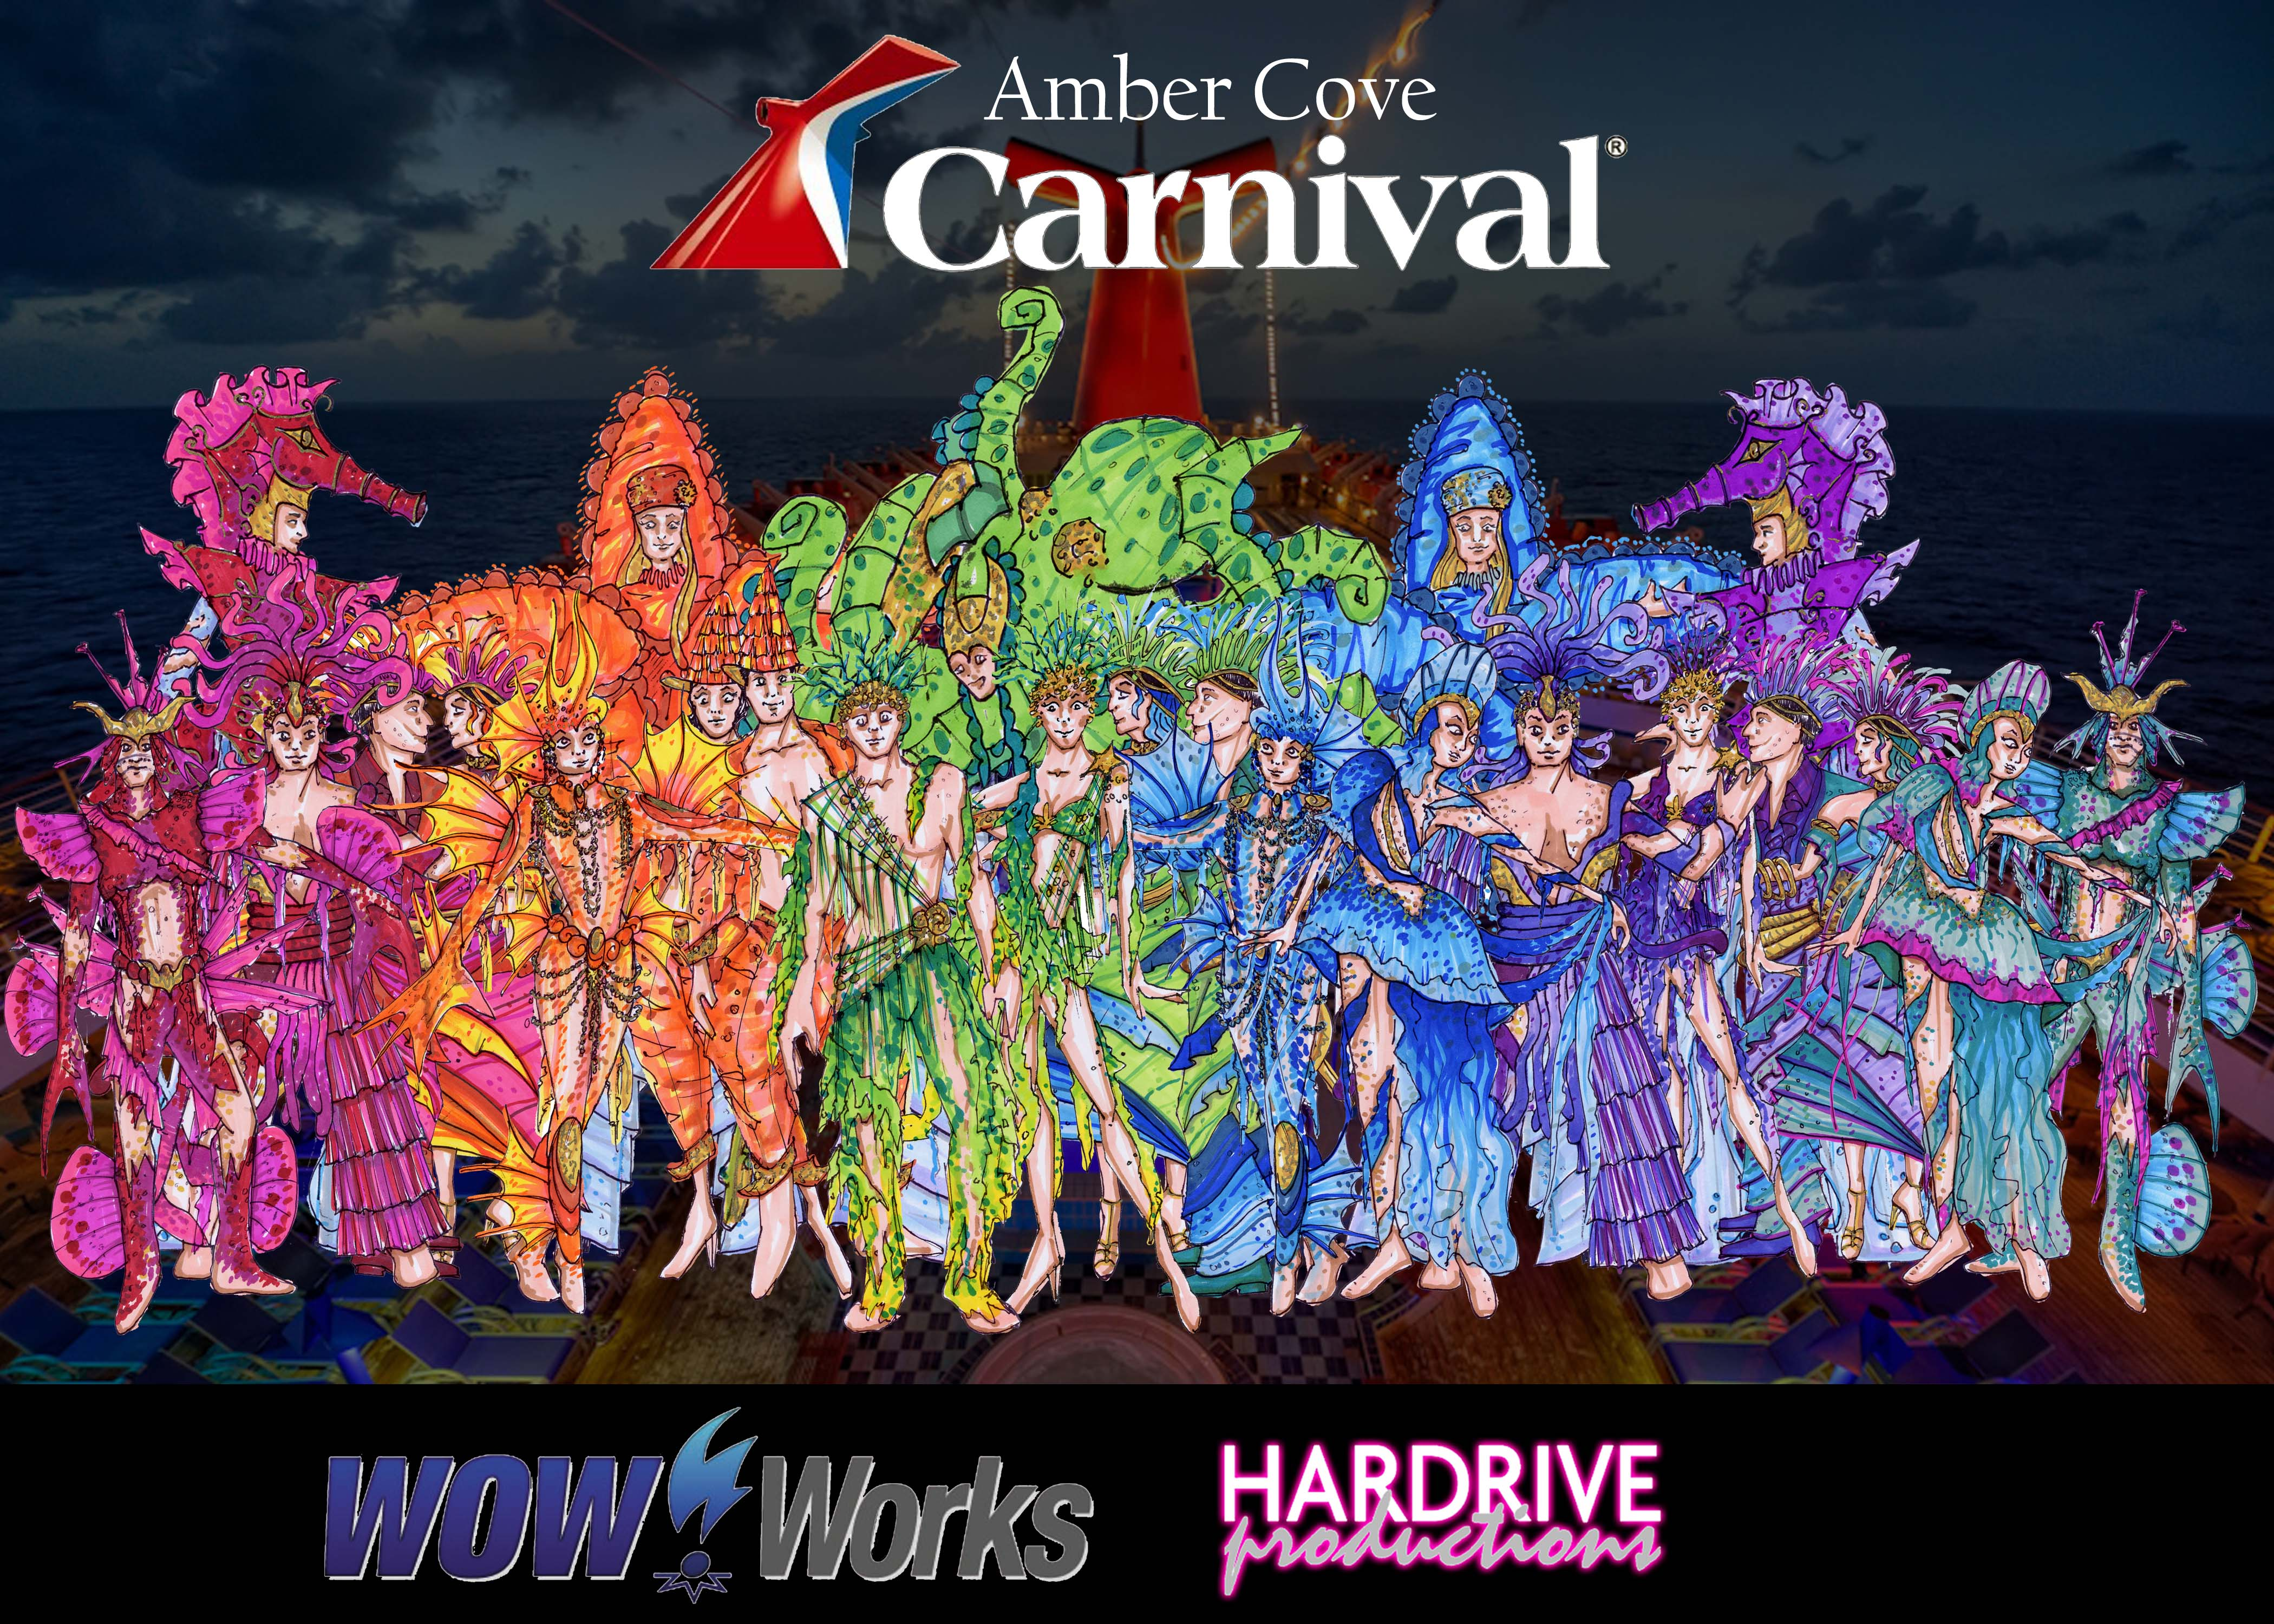 Carnival Cruise Lines, Amber Cove